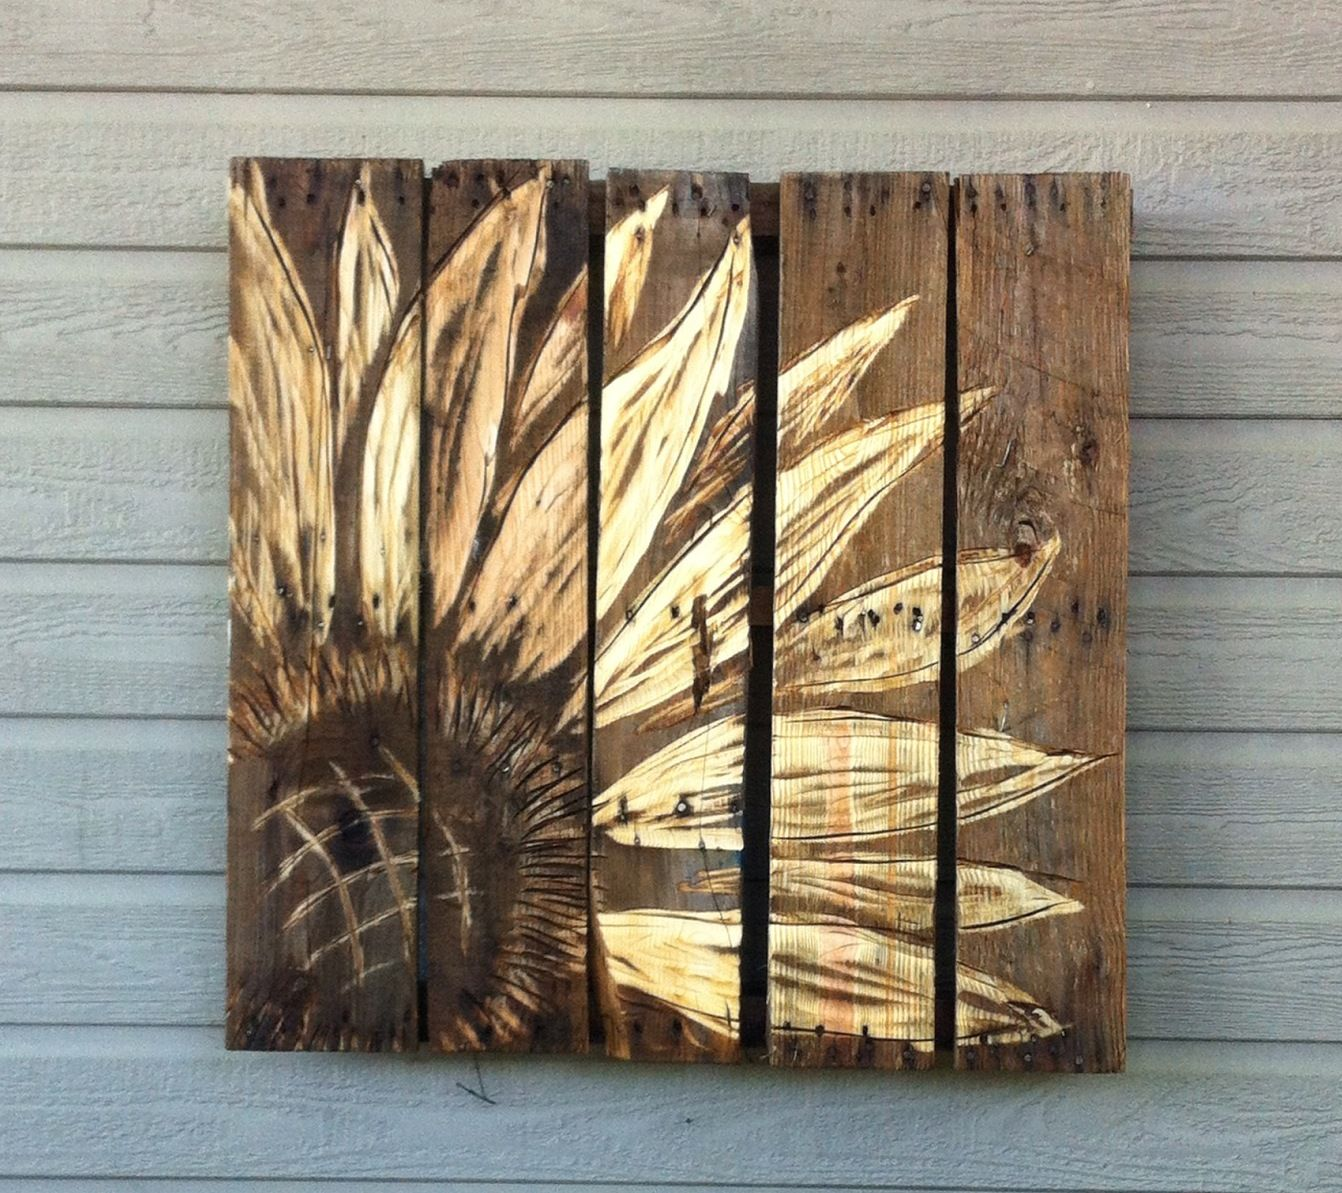 Wooden Pallet Carved With An Angle Grinder Wood Pallet Art Pallet Painting Pallet Art